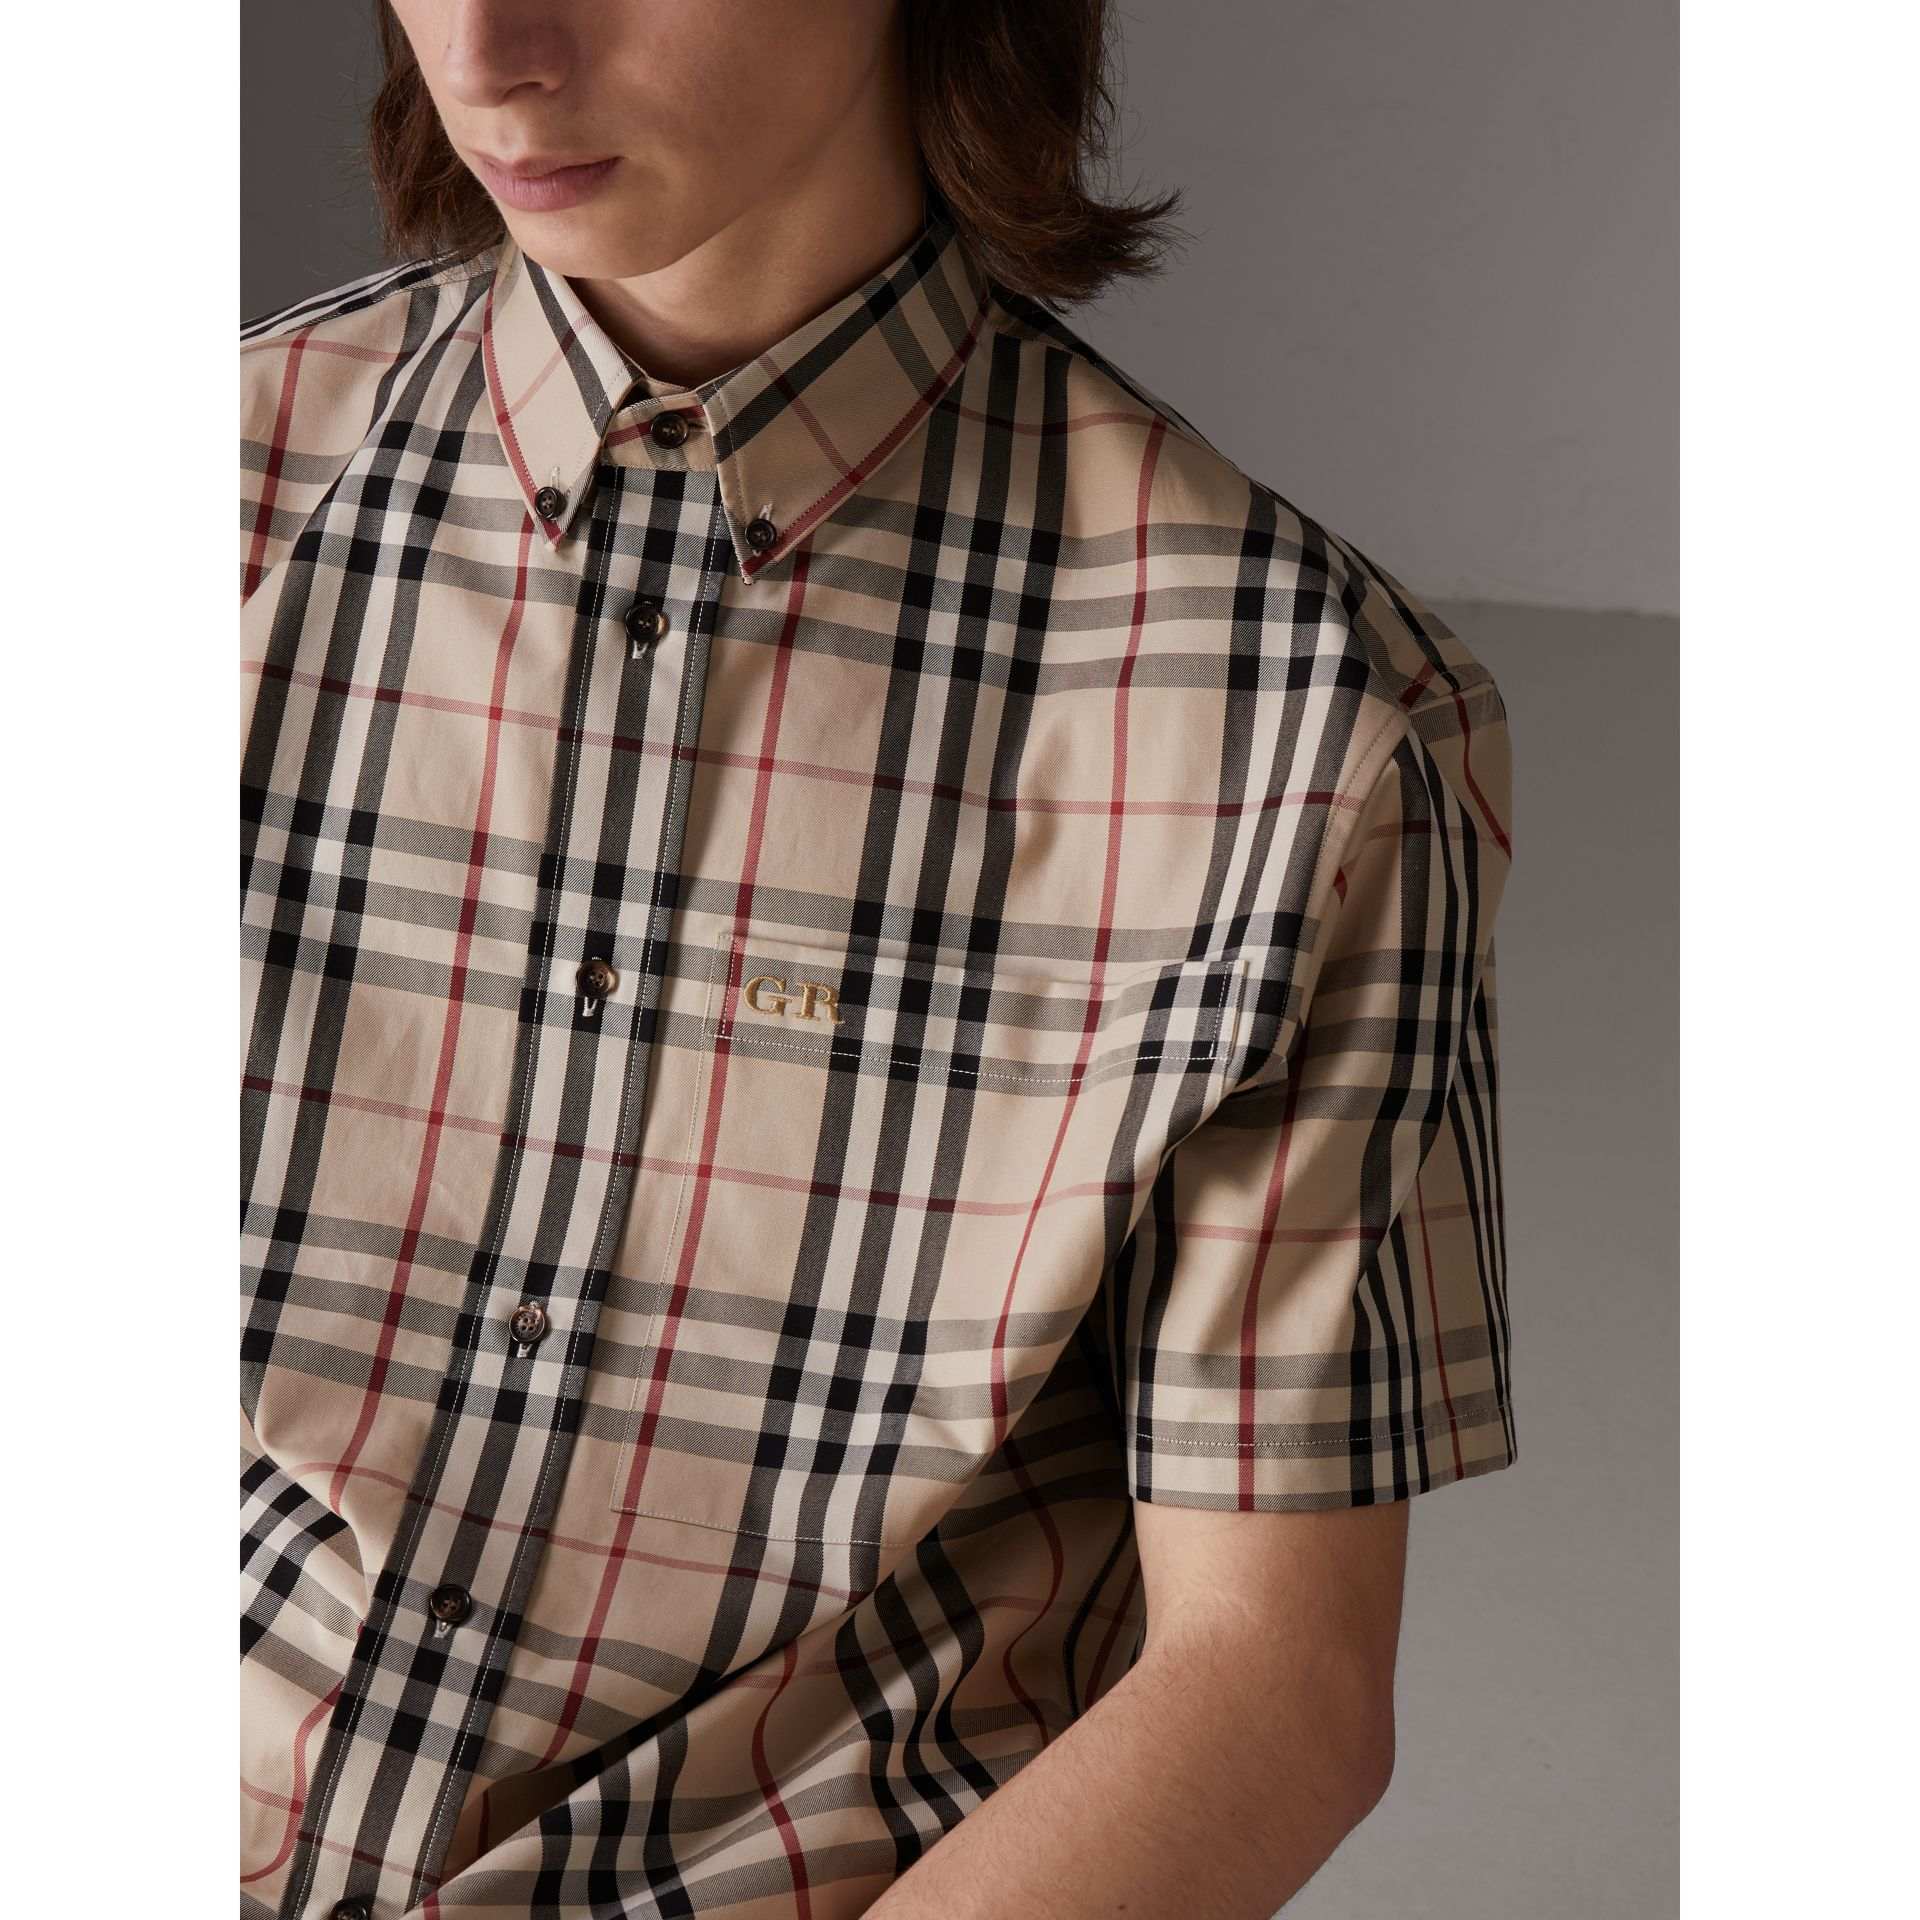 Gosha x Burberry Short-sleeve Check Shirt in Honey | Burberry Hong Kong - gallery image 1